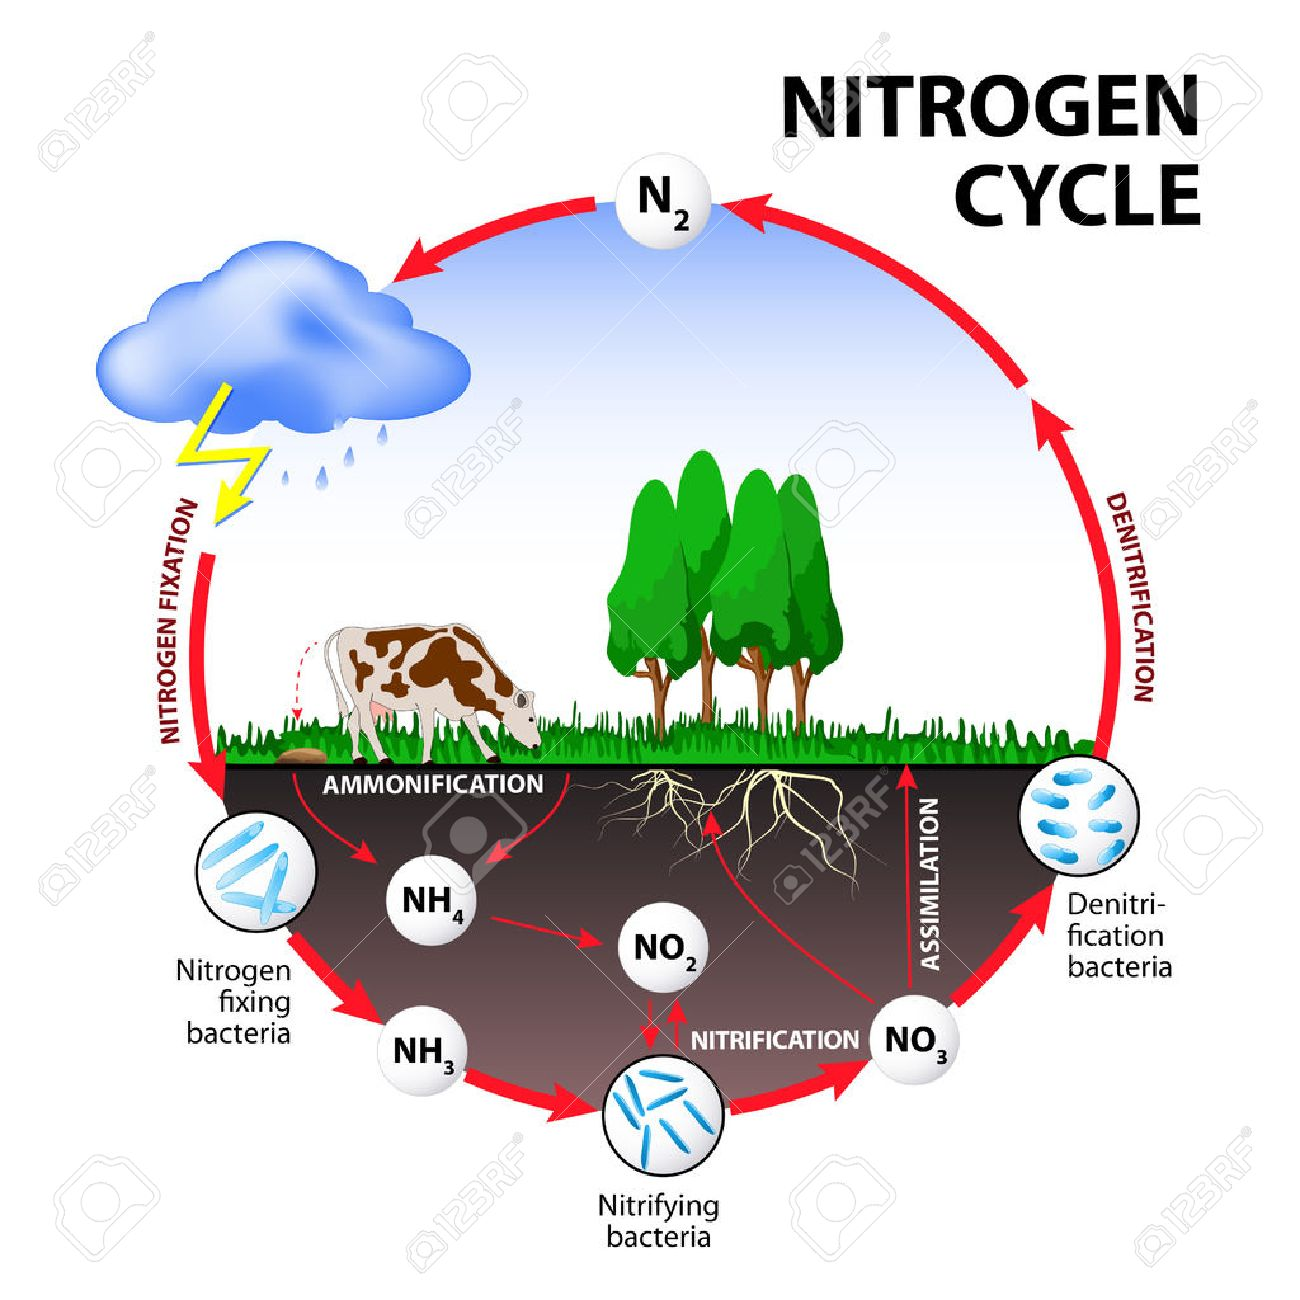 hight resolution of nitrogen cycle the processes of the nitrogen cycle transform nitrogen from one form to another